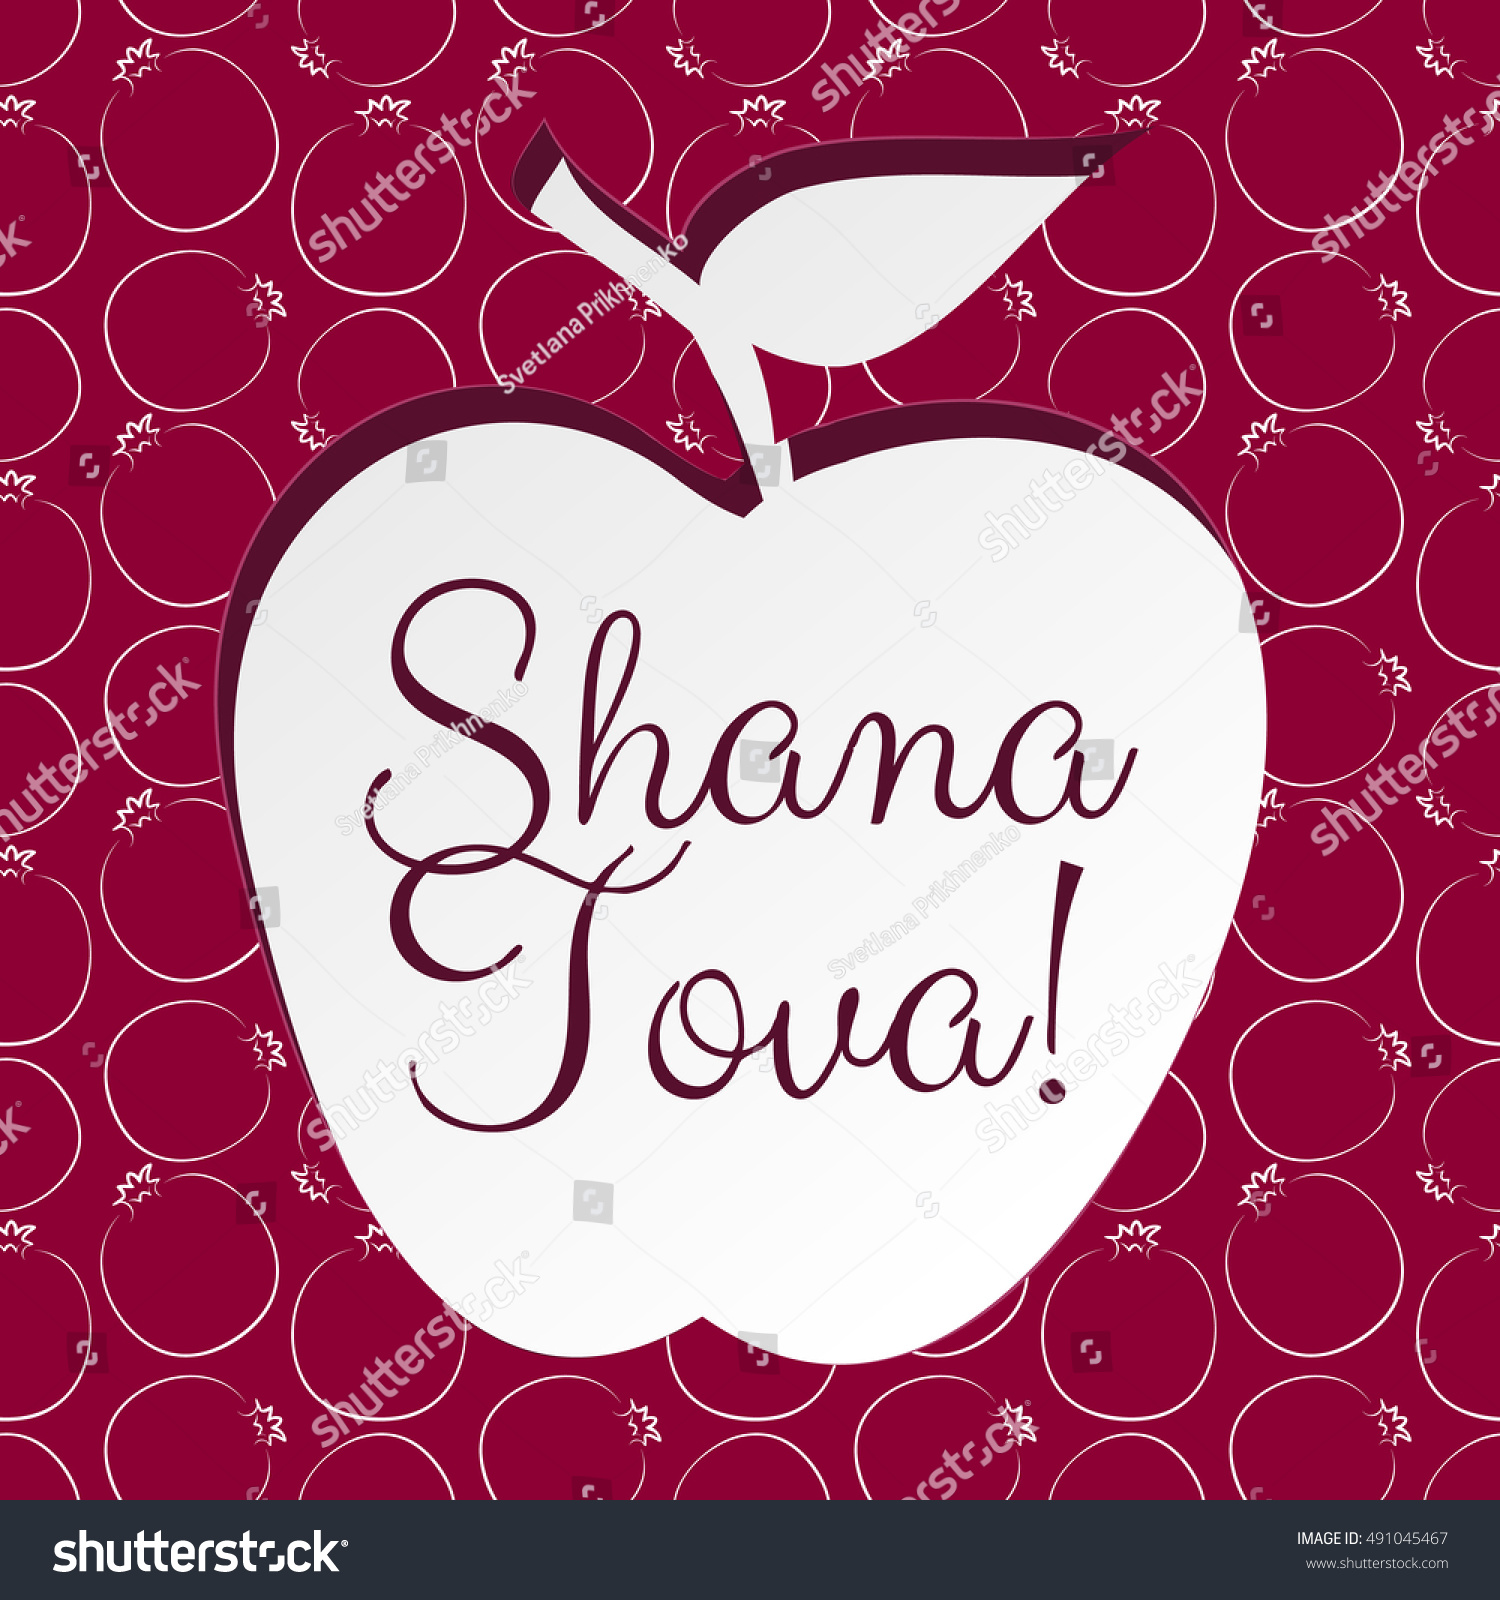 Greeting card jewish holiday rosh hashanah stock illustration greeting card for jewish holiday rosh hashanah with red pomegranate and green apple kristyandbryce Choice Image